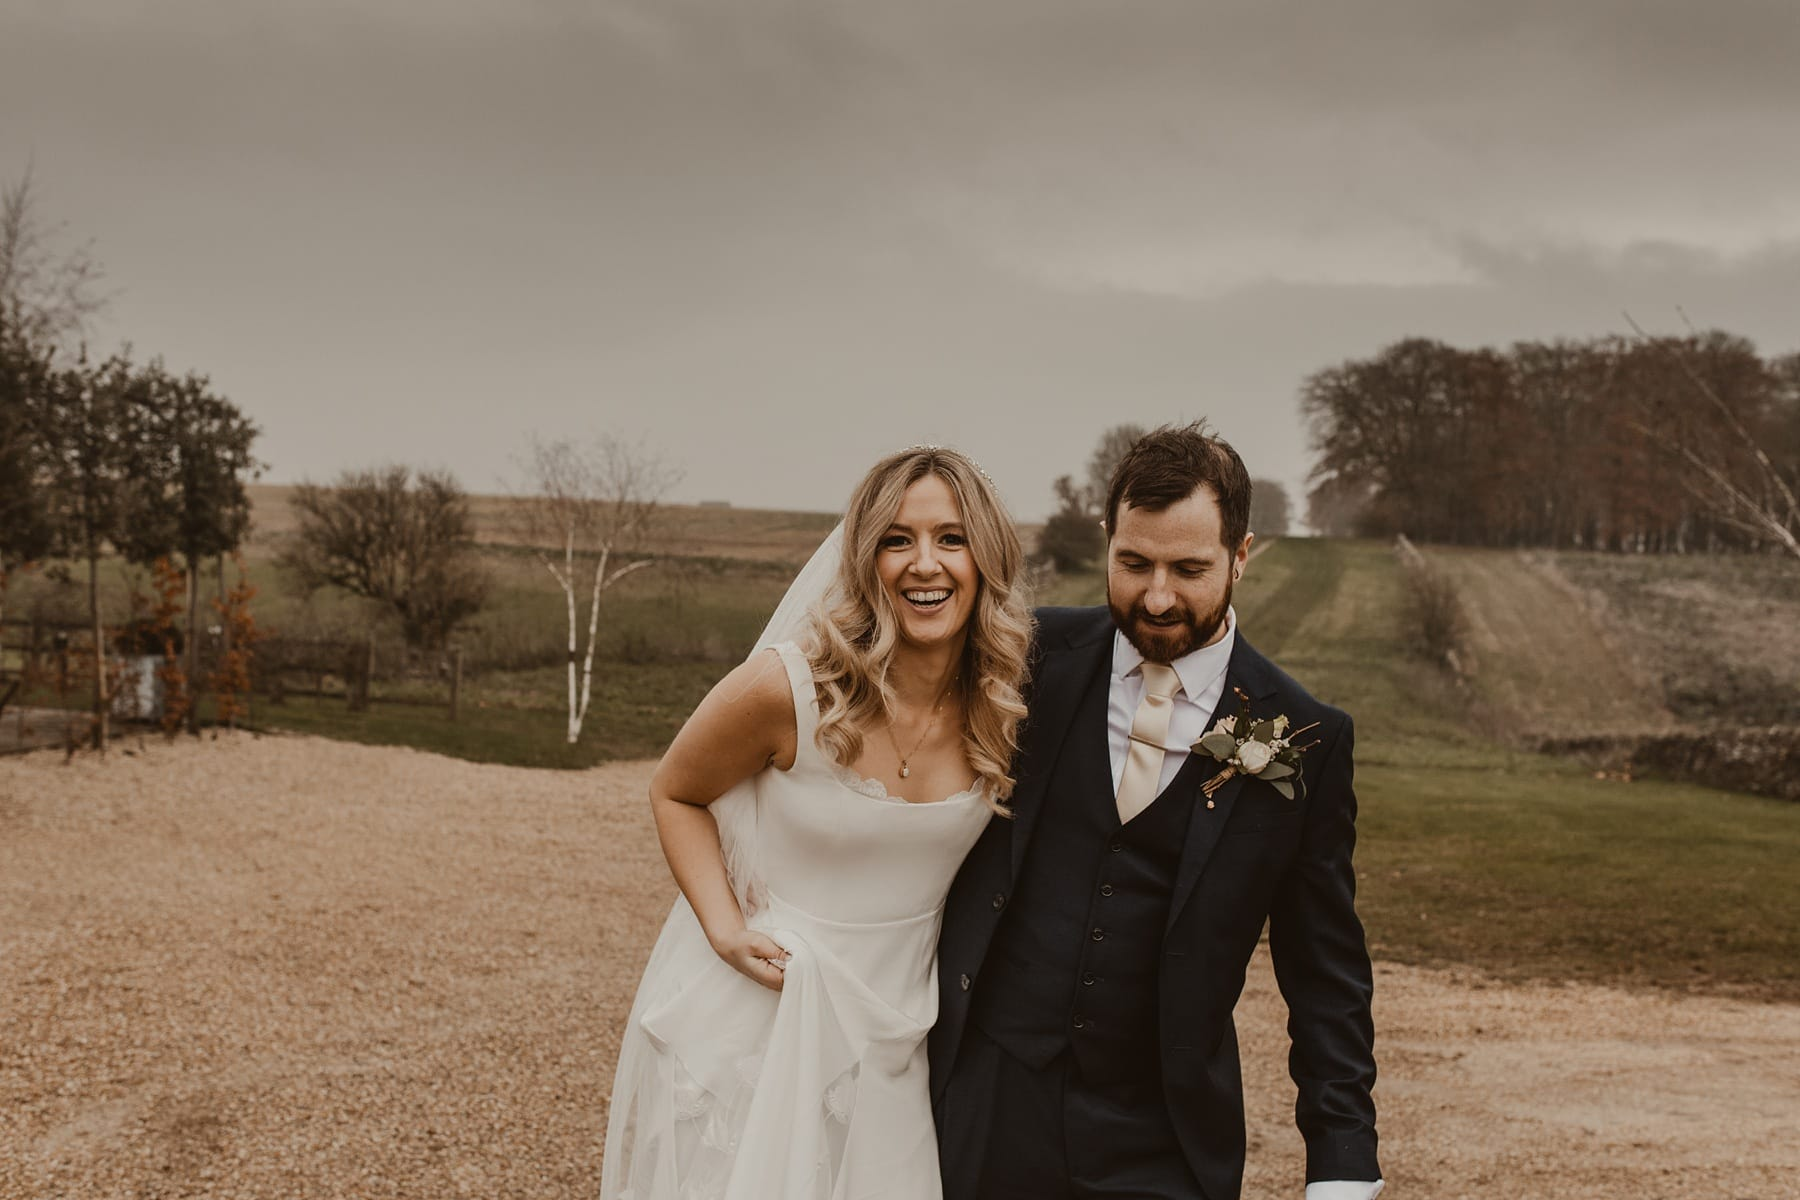 Bride and groom laughing, fields